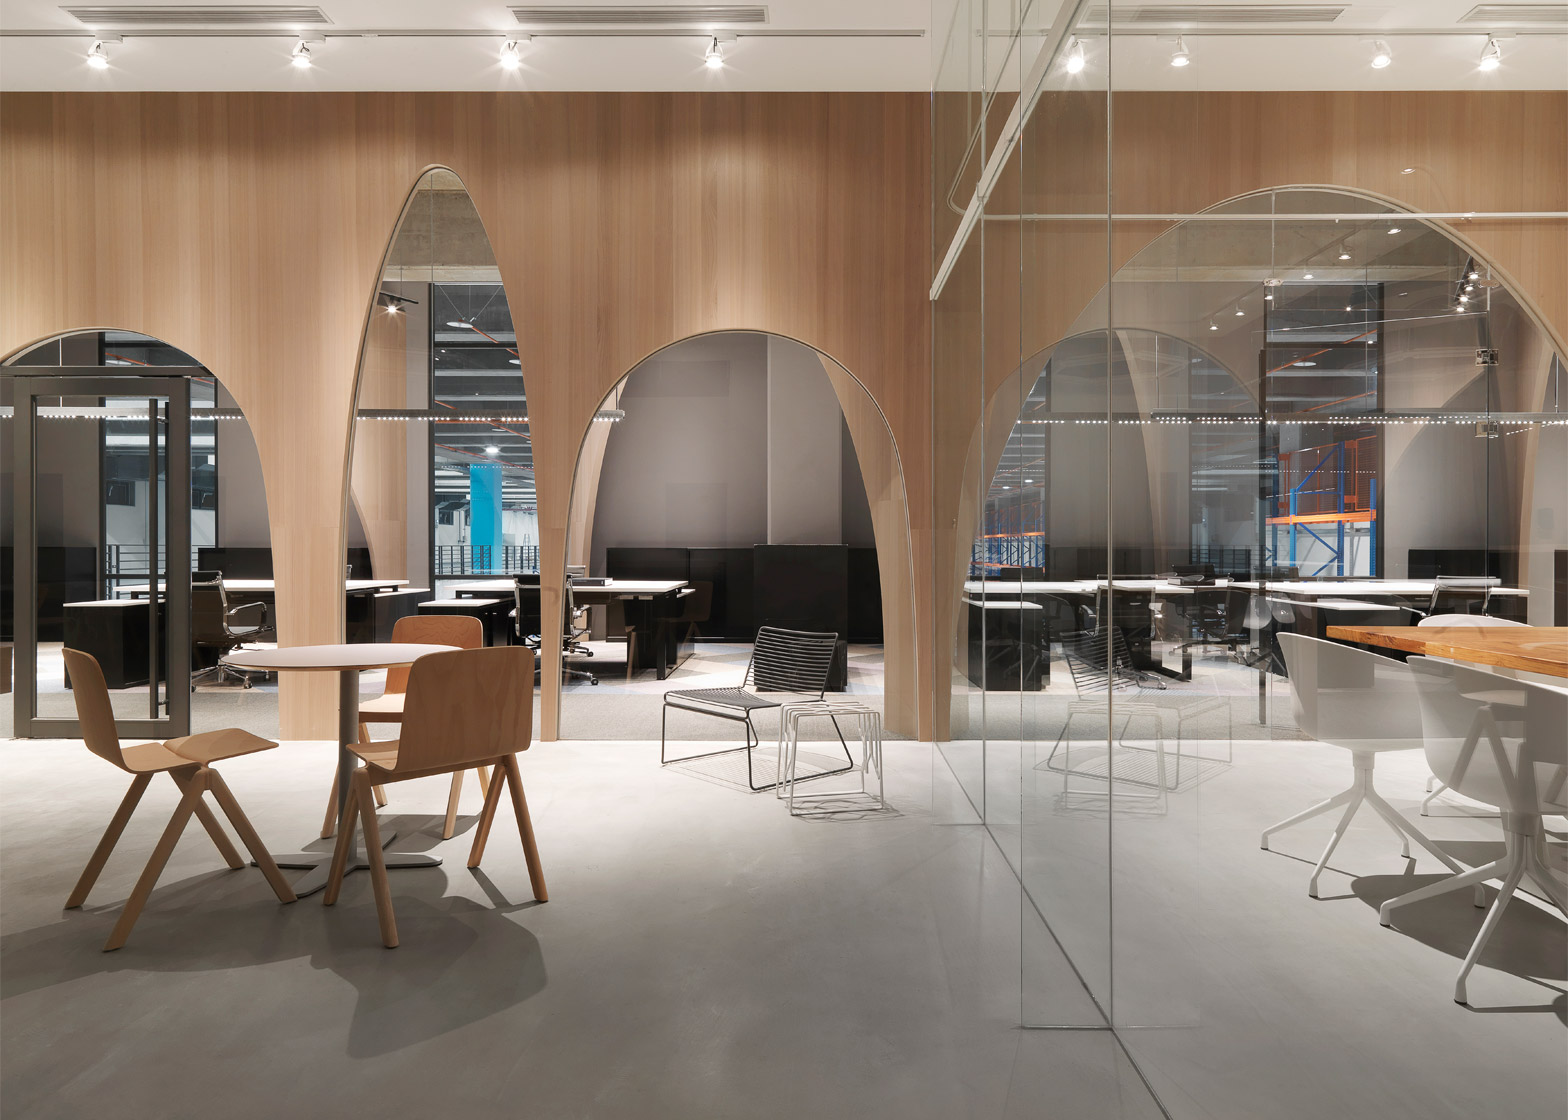 H&M head office by J.C. Architecture